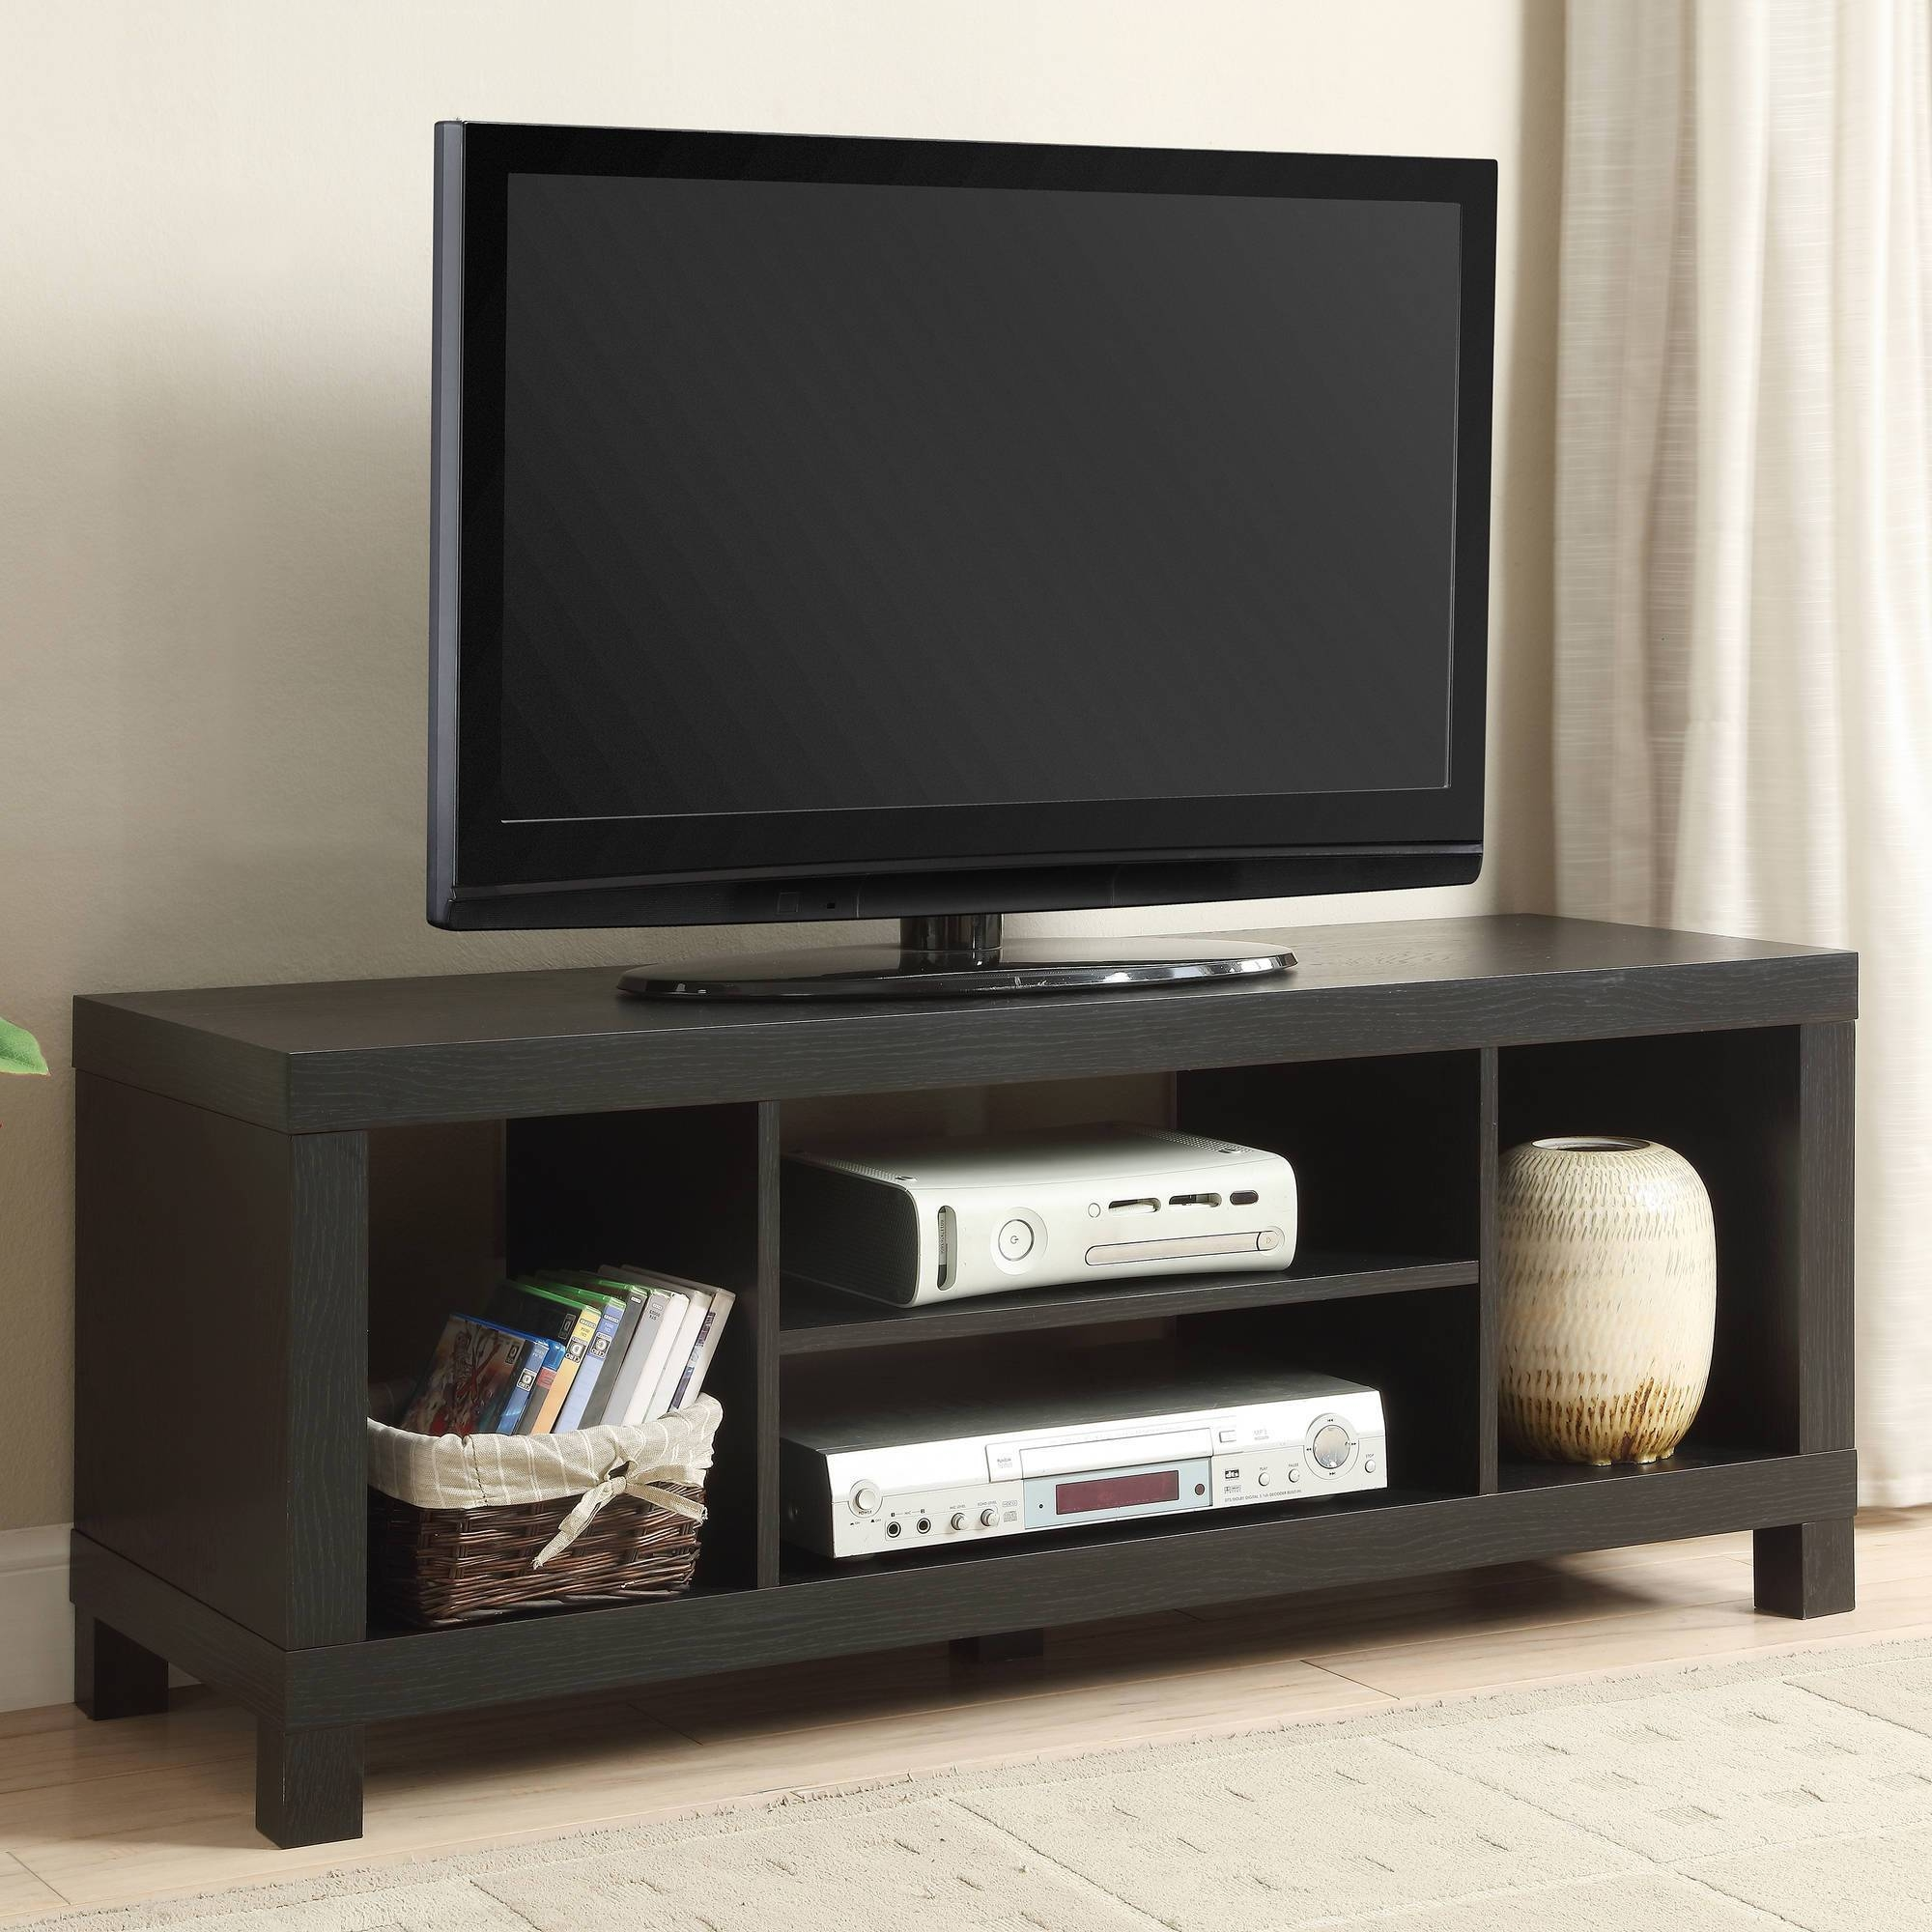 Tv Stands - Walmart inside Modern Tv Stands for 60 Inch Tvs (Image 12 of 15)